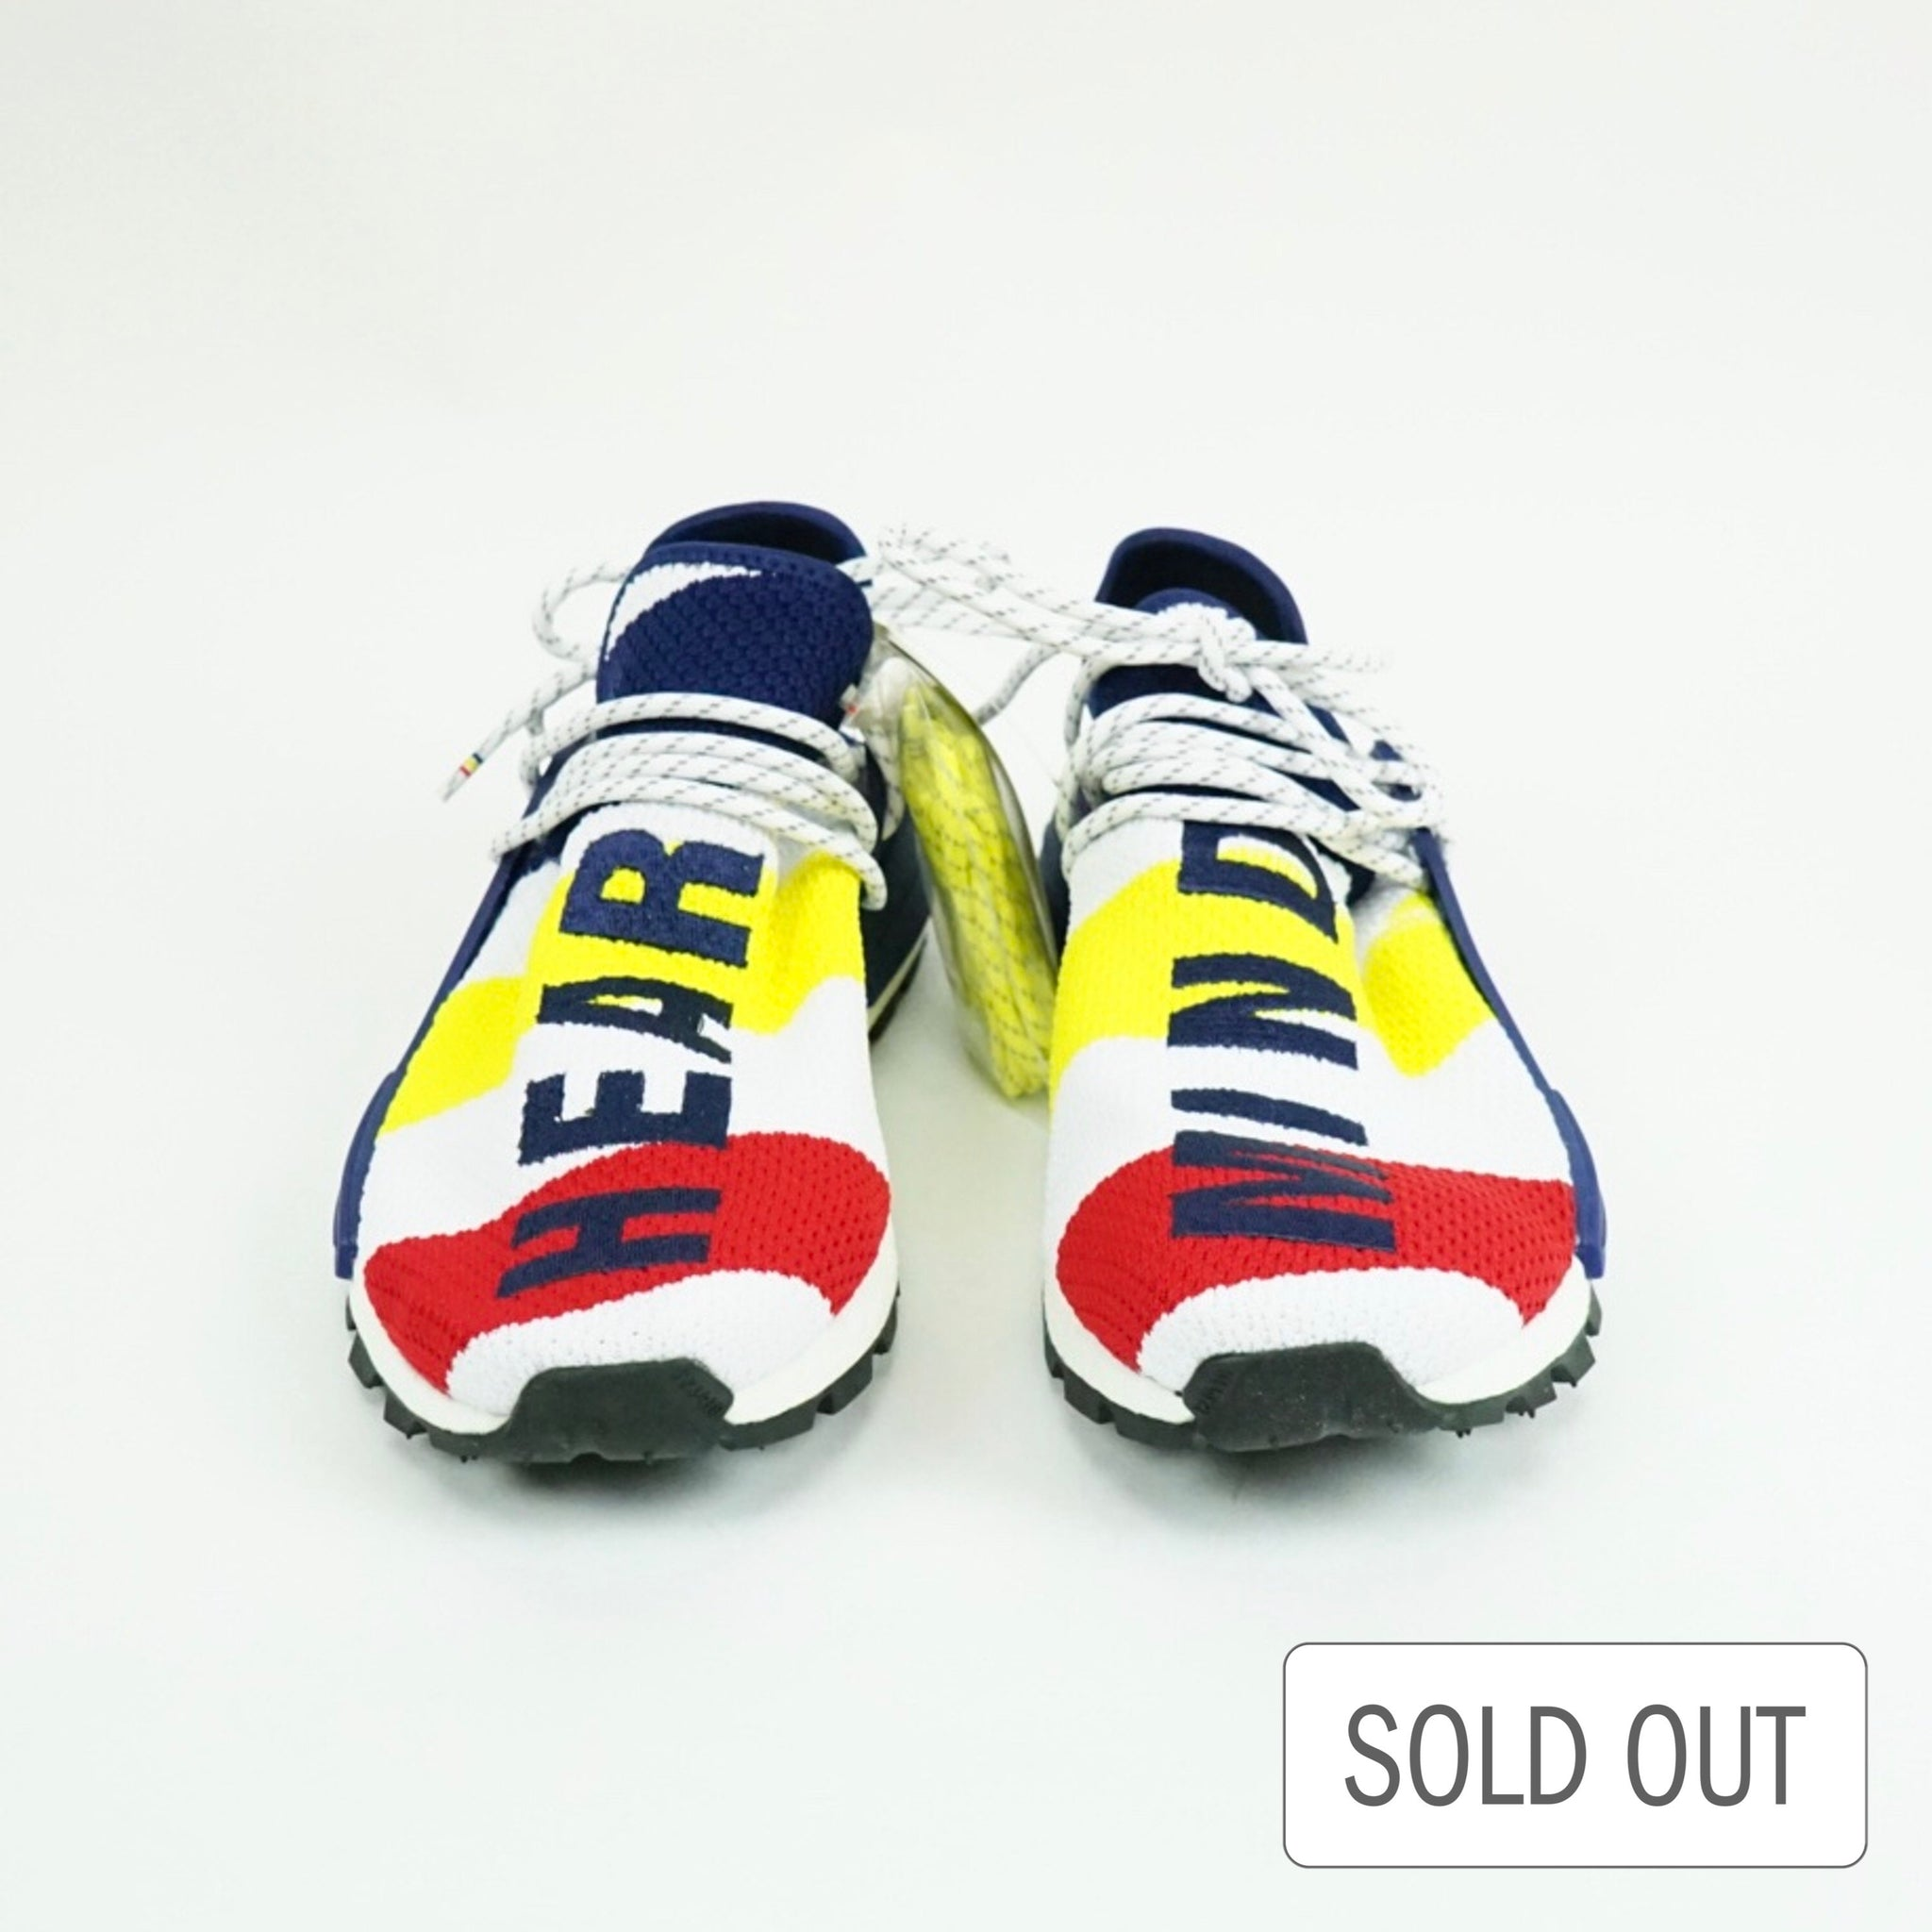 low priced 911c8 f3521 Adidas X Pharrell Williams NMD Human Race Hu BBC Billionaire Boys Club -  Scarlet / White / Multi